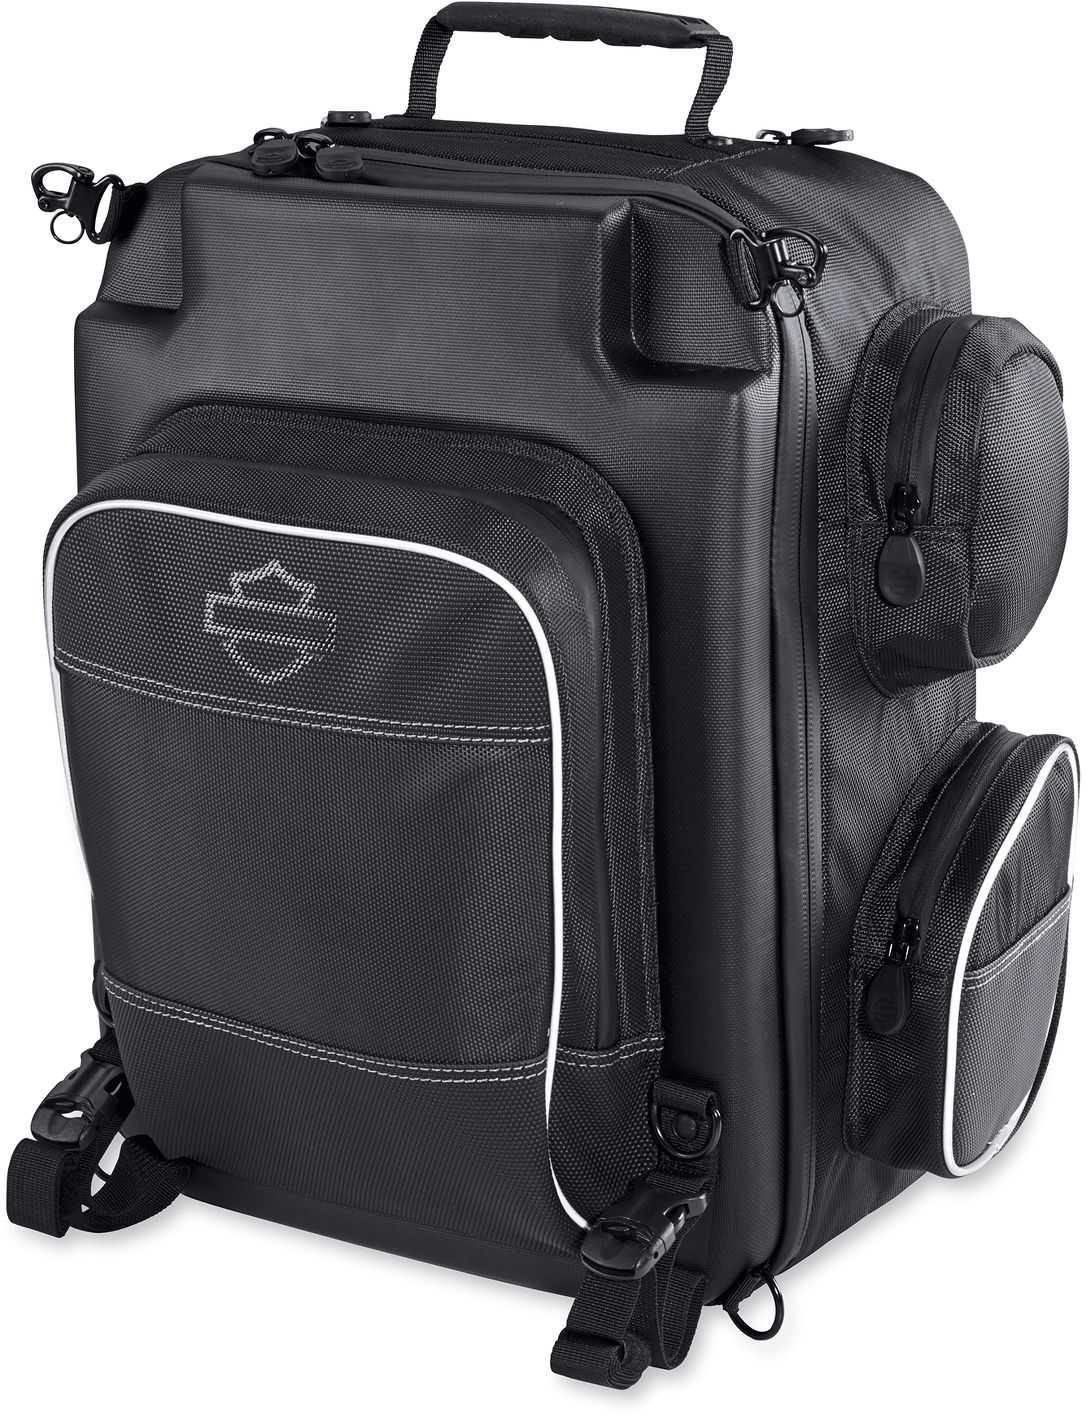 Harley-Davidson® Onyx Premium Luggage Weekender Bag, Universal Fit-Black 93300105